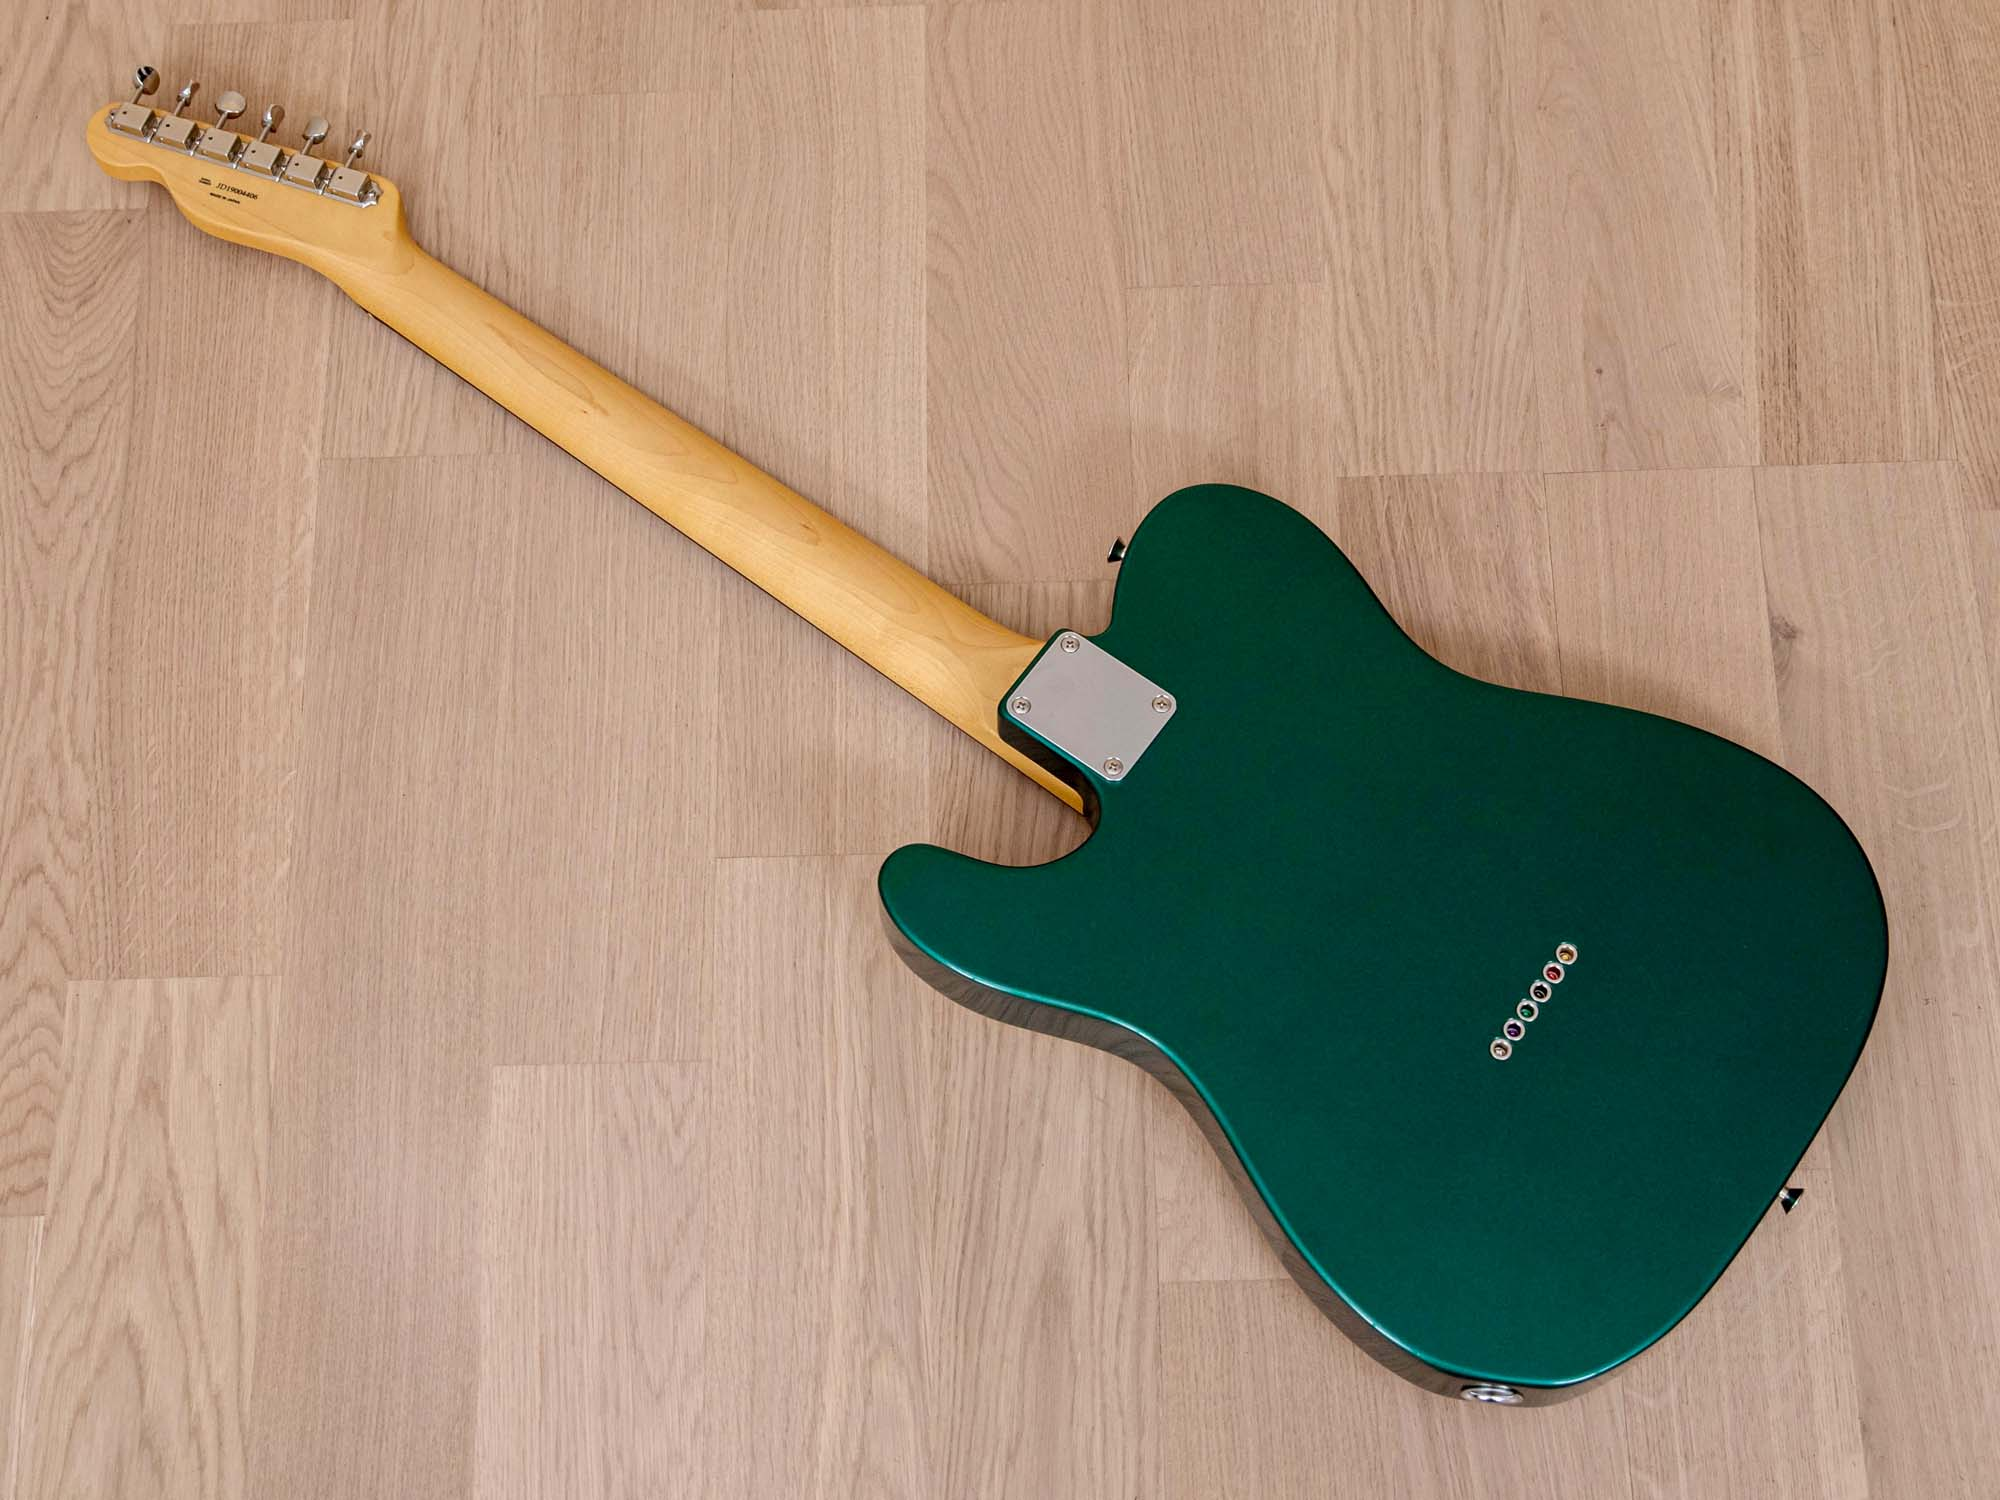 2019 Fender Hybrid 60s Telecaster Electric Guitar Sherwood Green Mint Condition w/ Tags, Japan MIJ